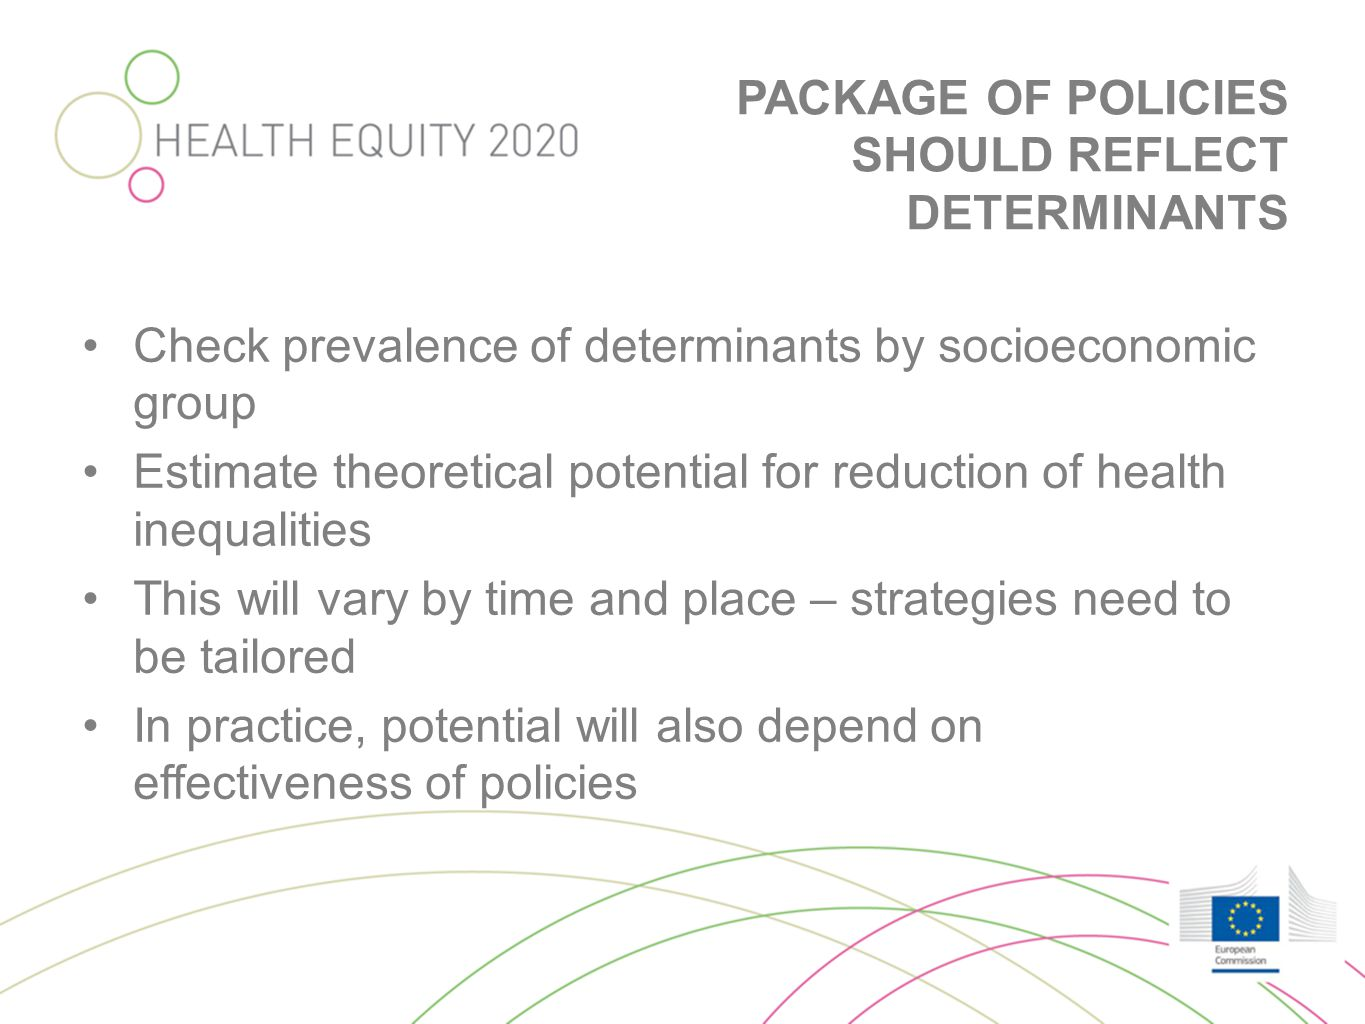 PACKAGE OF POLICIES SHOULD REFLECT DETERMINANTS •Check prevalence of determinants by socioeconomic group •Estimate theoretical potential for reduction